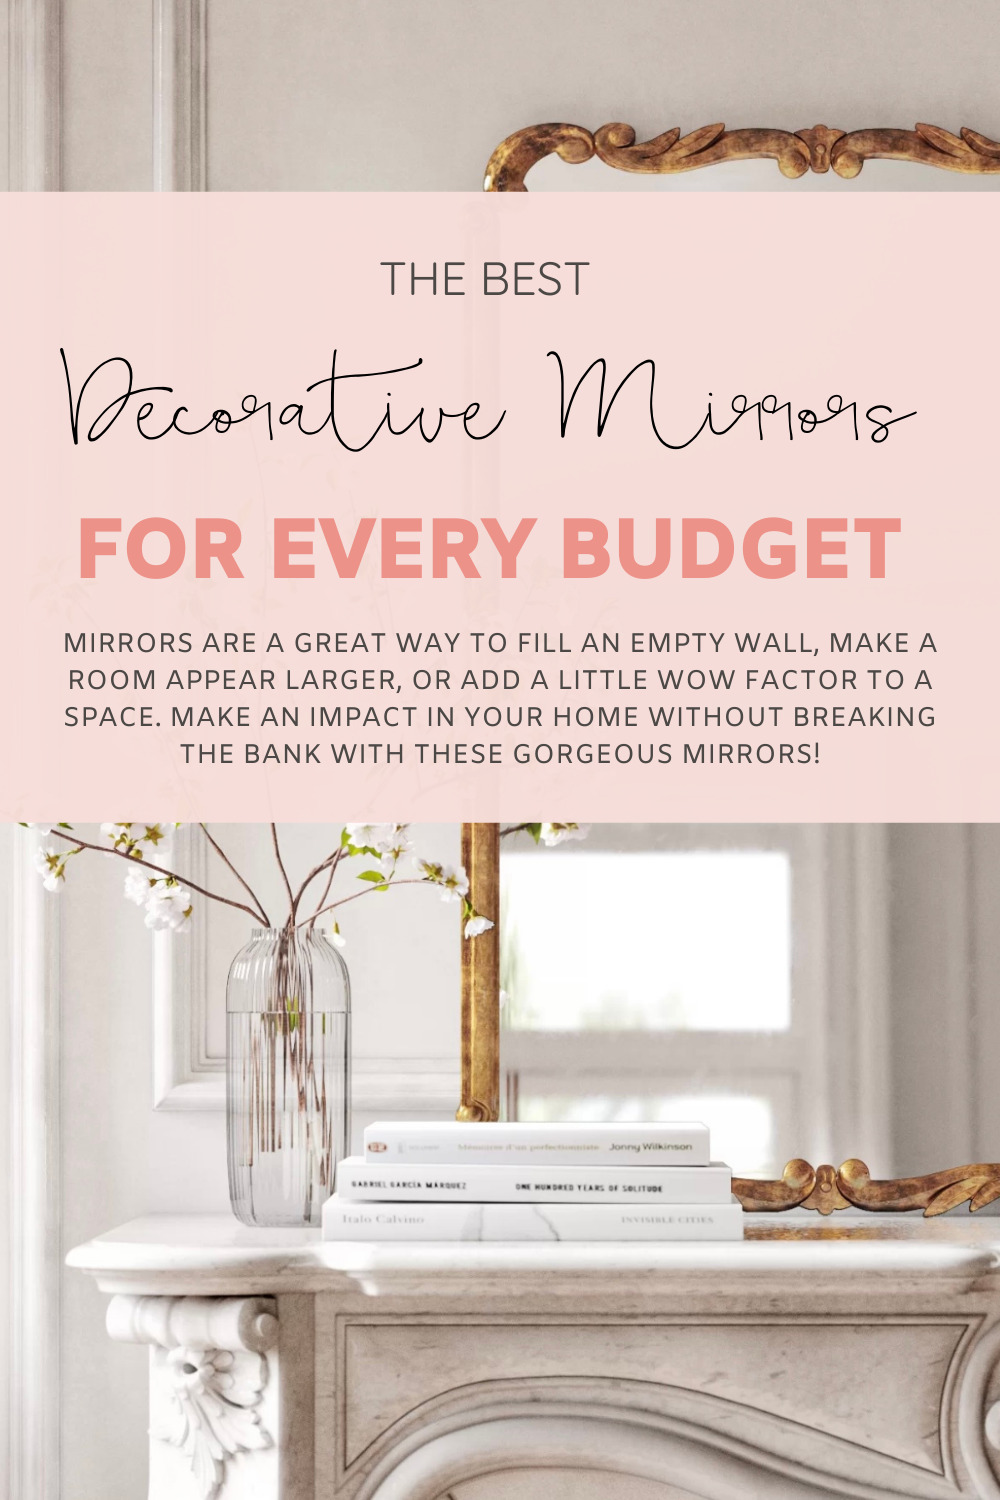 Mirrors are a great way to fill an empty wall, make a room appear larger, or simply add a little wow factor to a space. Make an impact in your home without breaking the bank with these gorgeous decorative mirrors! | @glitterinclexi | GLITTERINC.COM